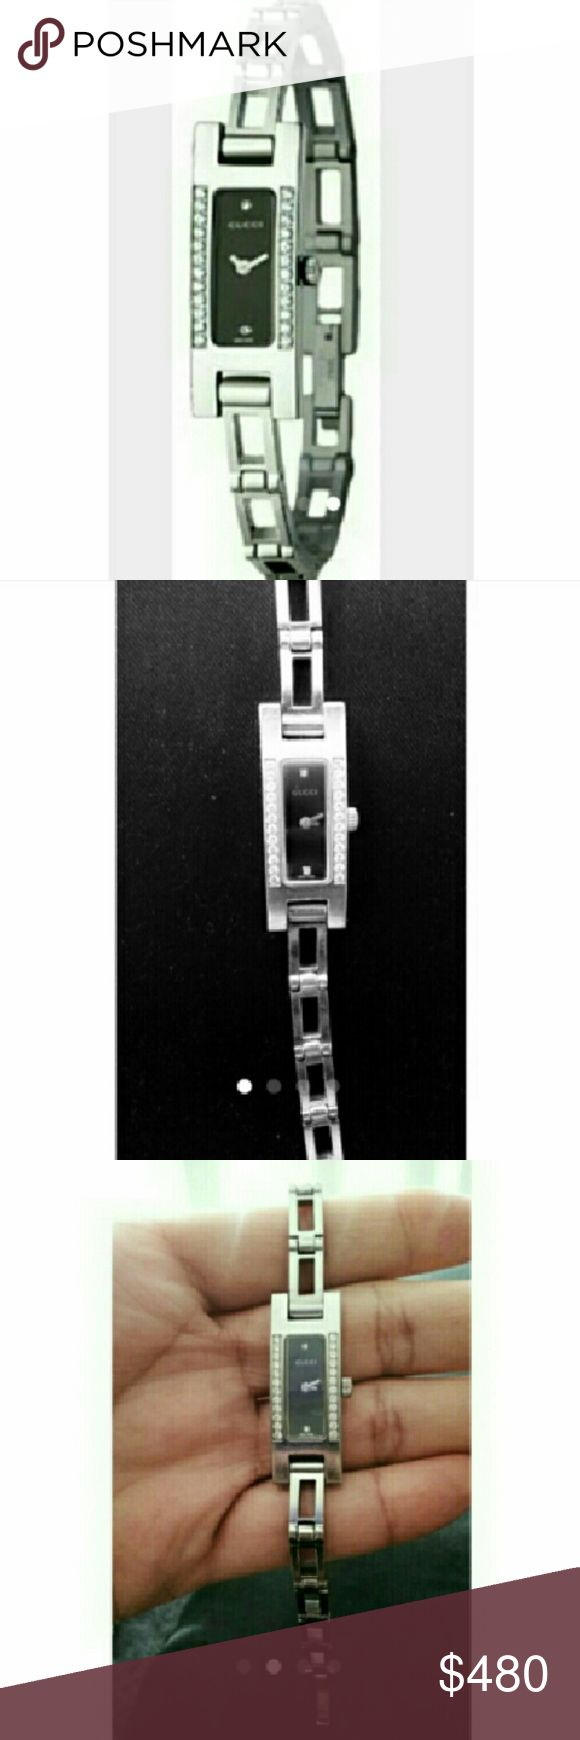 GUCCI WATCH DIAMOND MOTHER PEARL Women Gucci Watch Diamond Mother Pearl. Excellent condition-Gently used. Swiss Quartz  movement. Water resistant-stainless steel. REF:3900L Battery dead (No box) Bracelet dimensions:7 inchs long x 6mm wide. ***Firm Price**